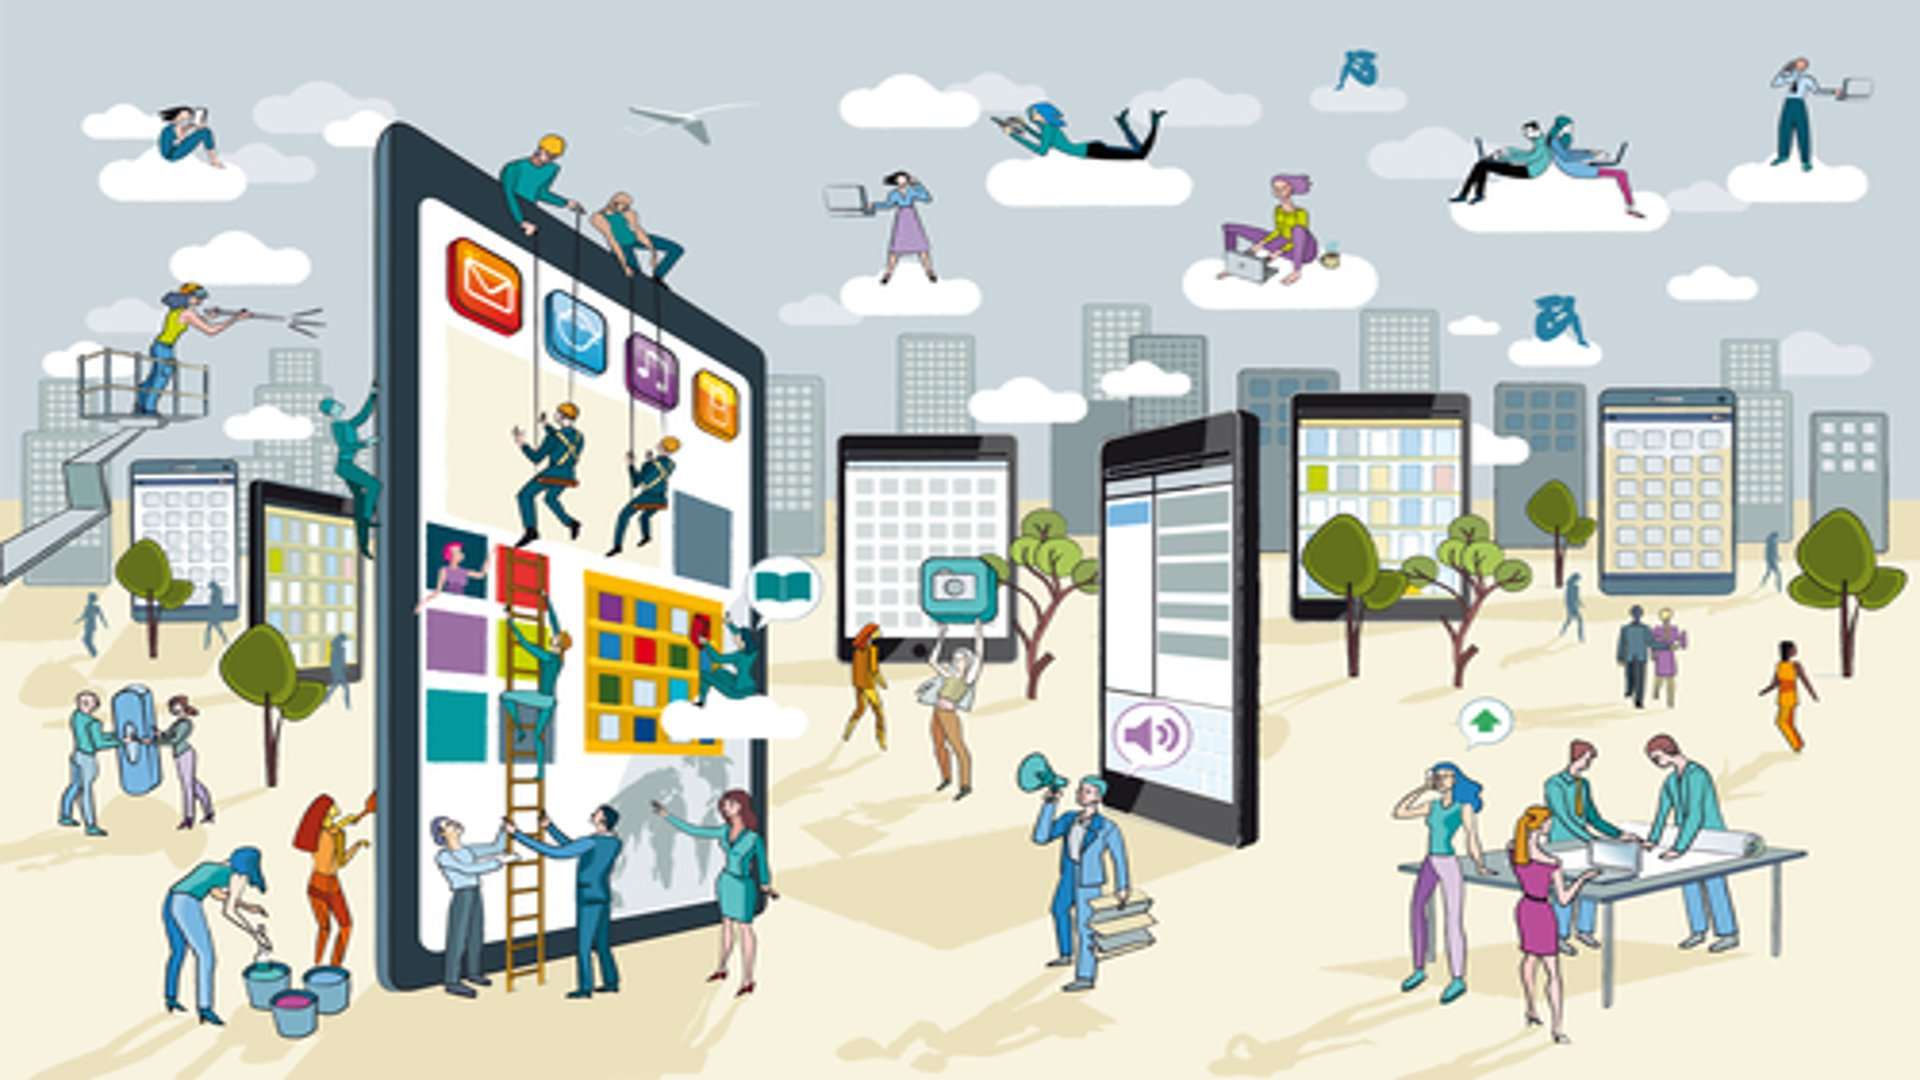 Design and Function In Smartphones, Smartwatches, And Tablets